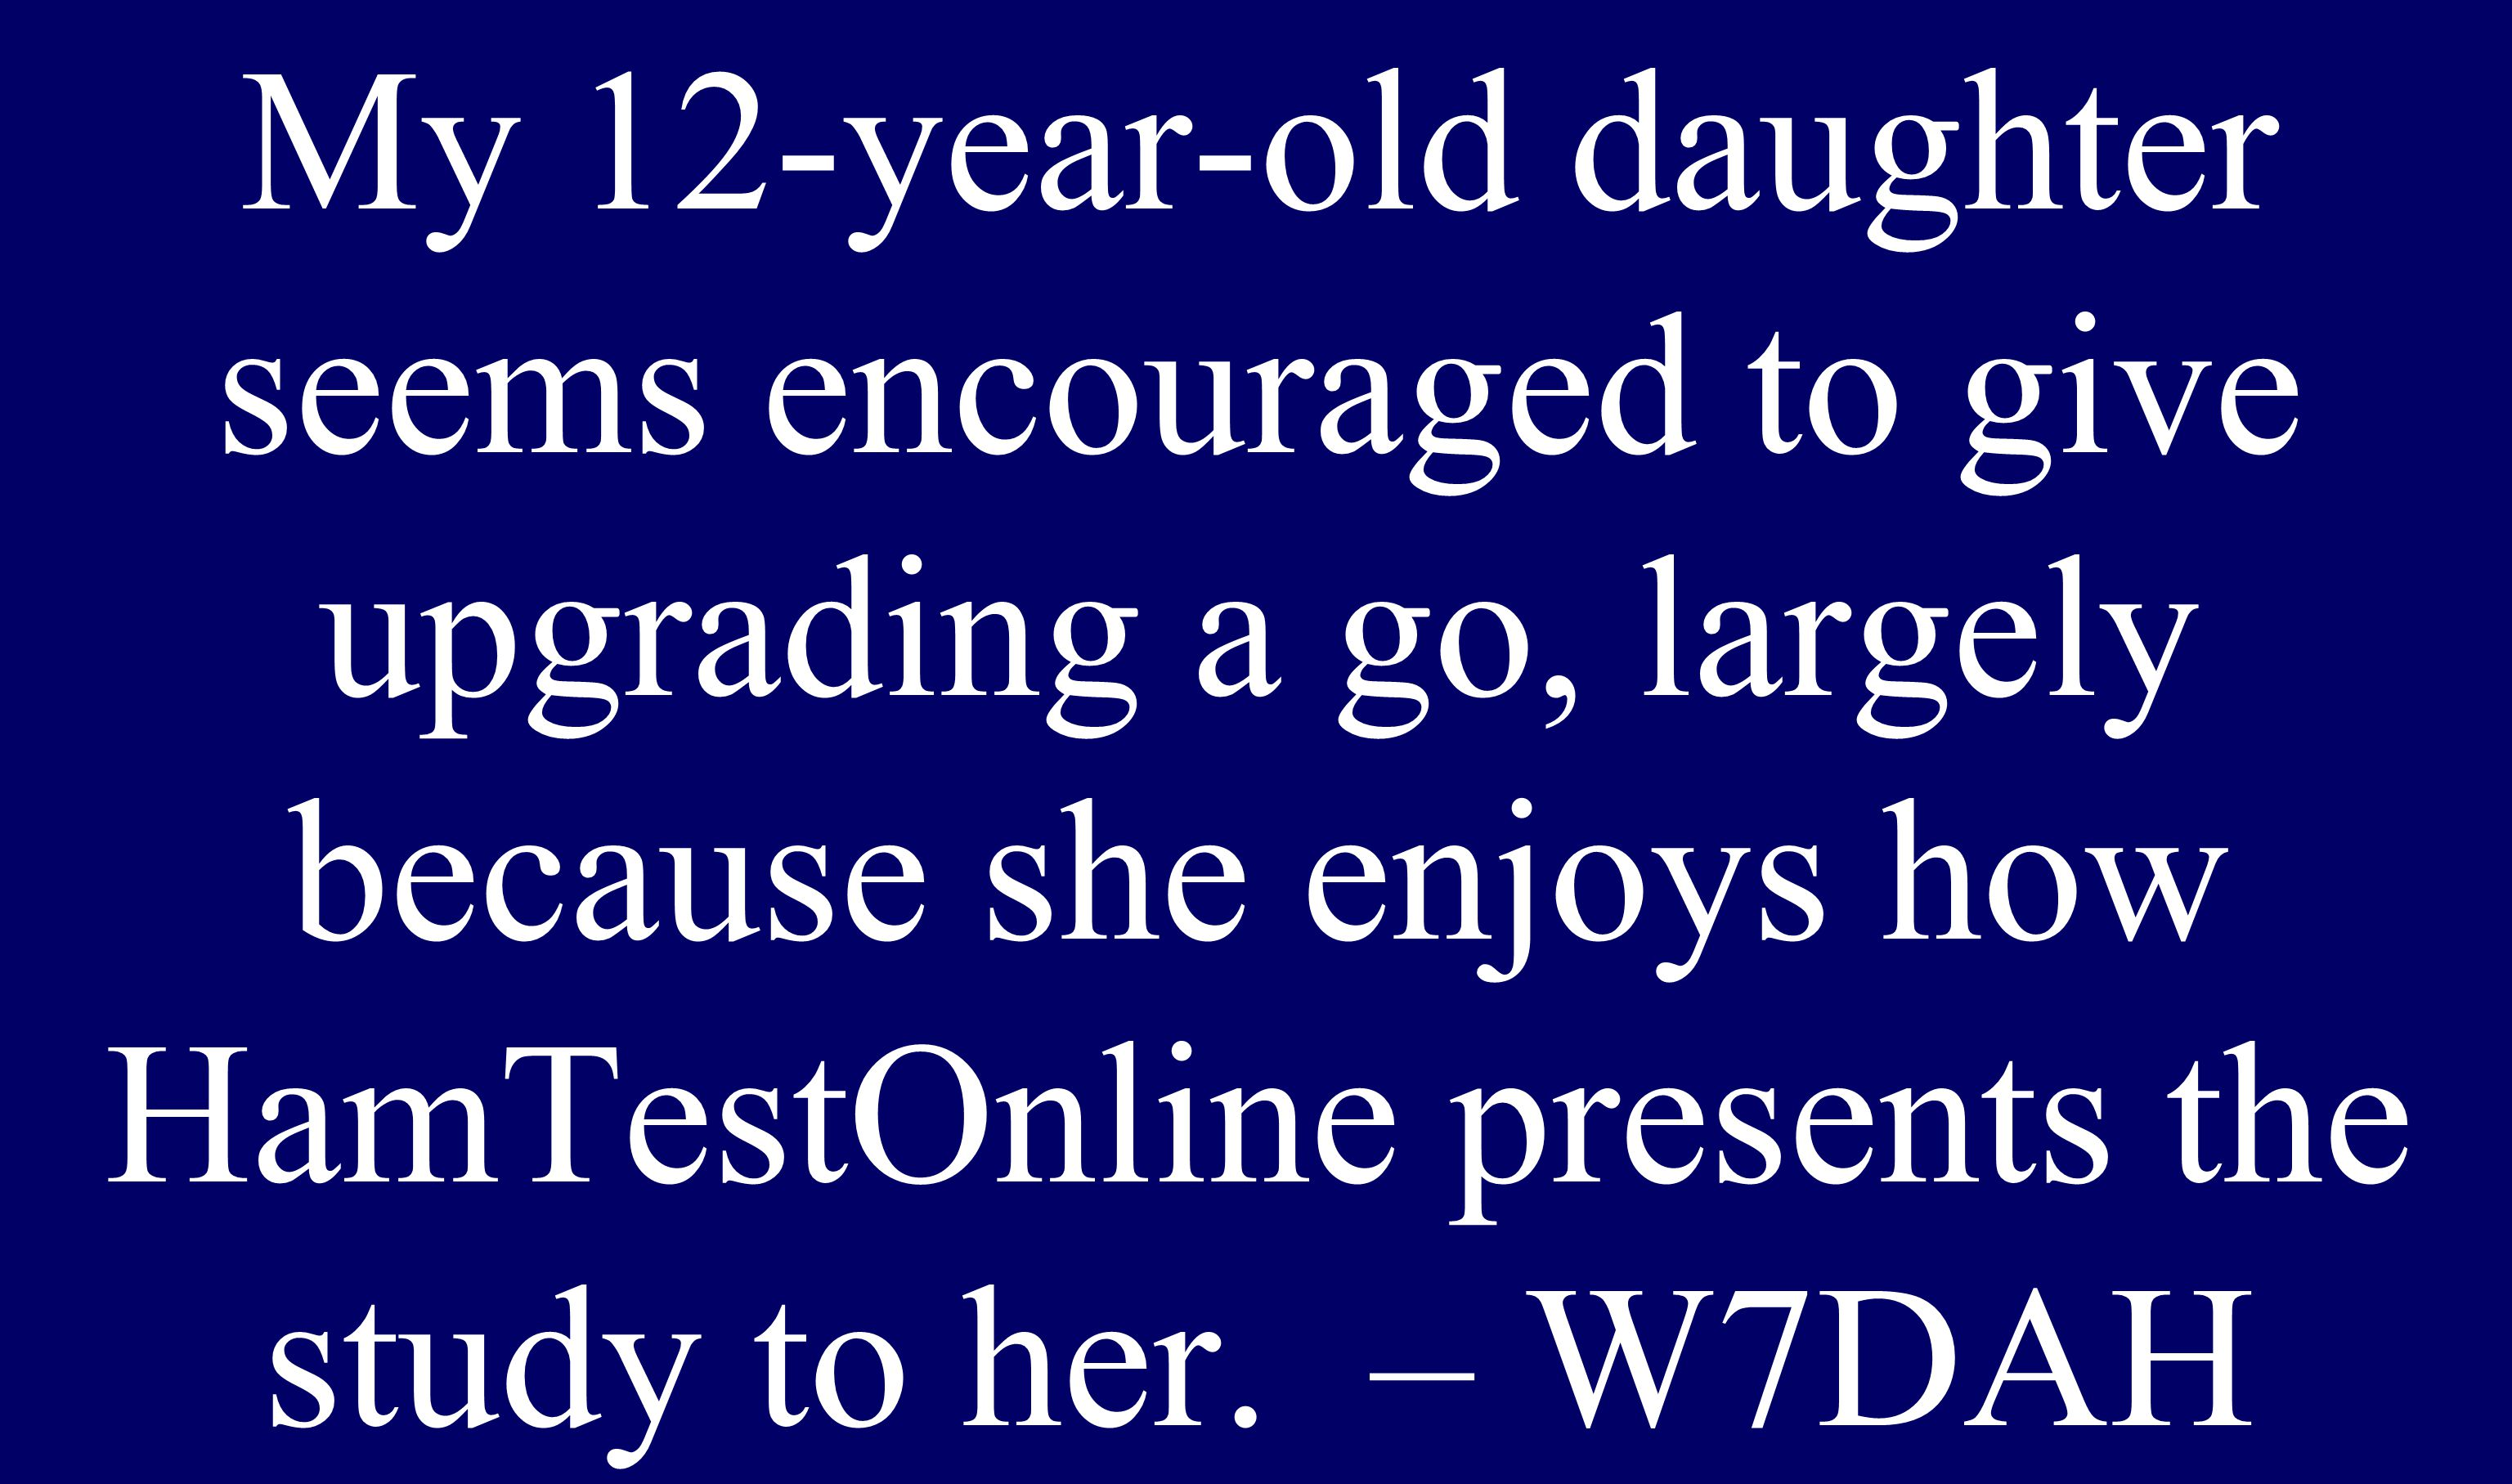 You're never too young... My 12-year-old daughter seems encouraged to give upgrading a go, largely because she enjoys how HamTestOnline presents the s